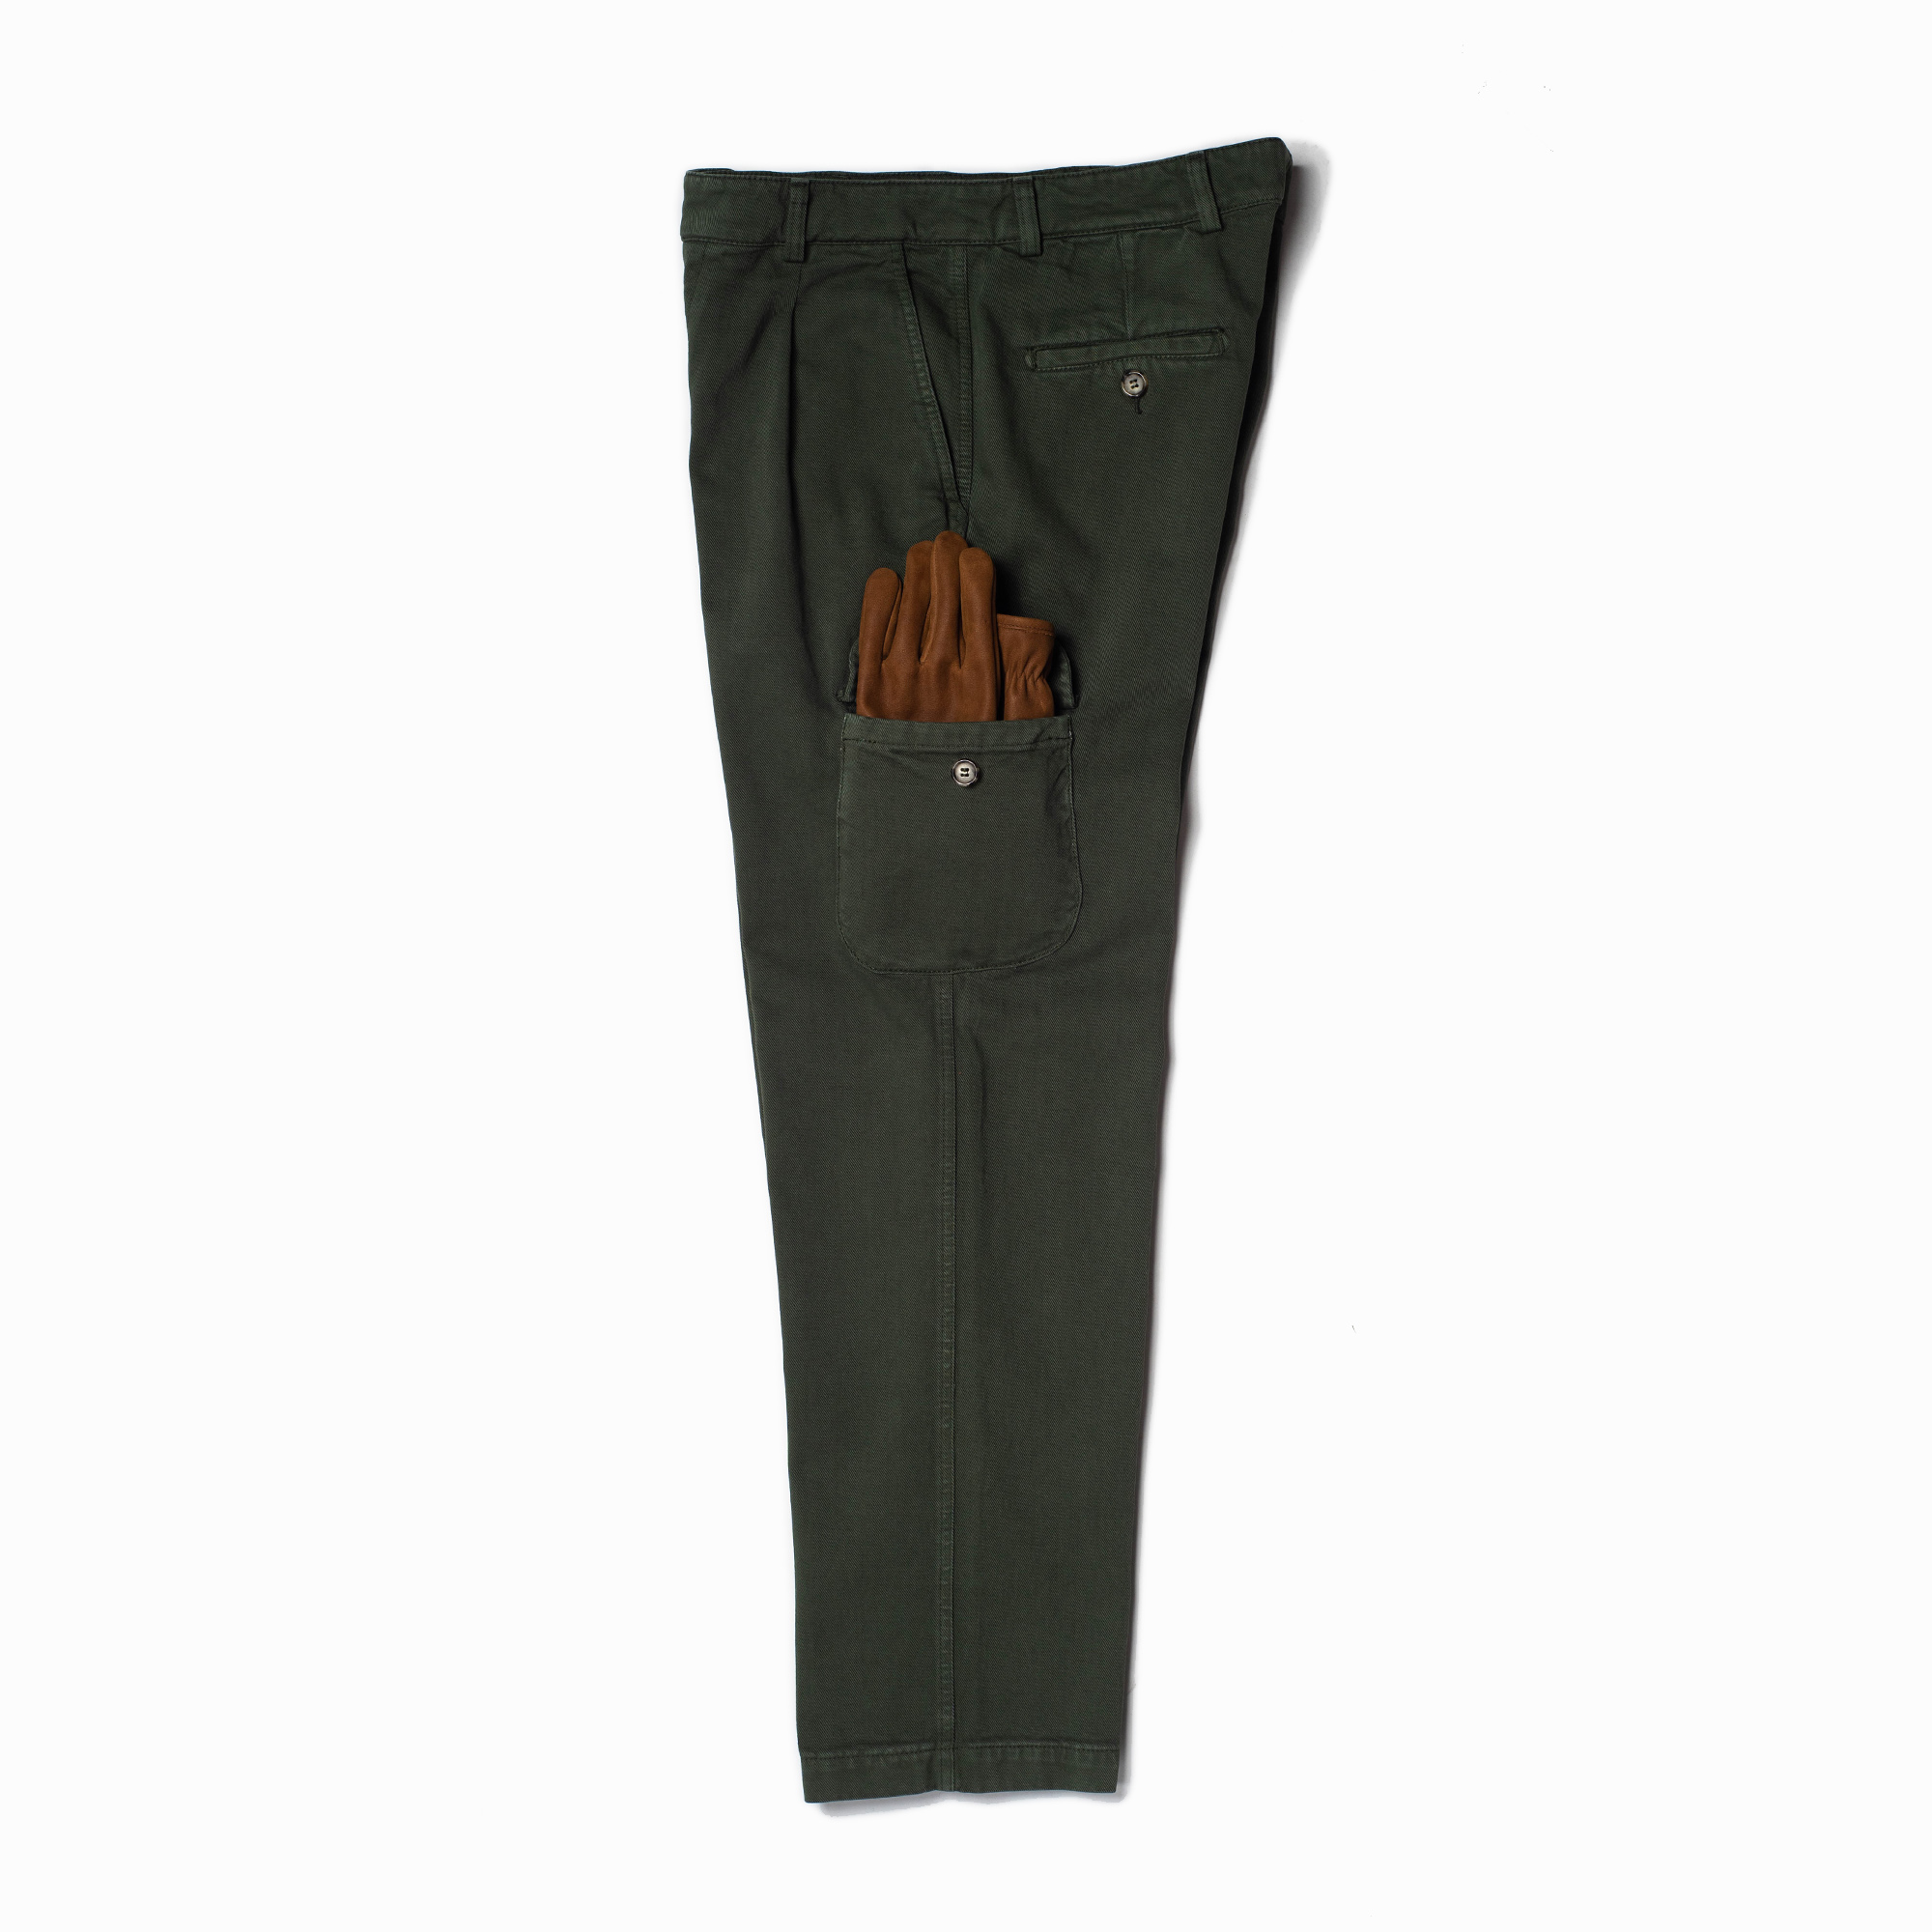 shangri-la-heritage-explorator-olive-cotton-twill-pants-still-life-side-gloves